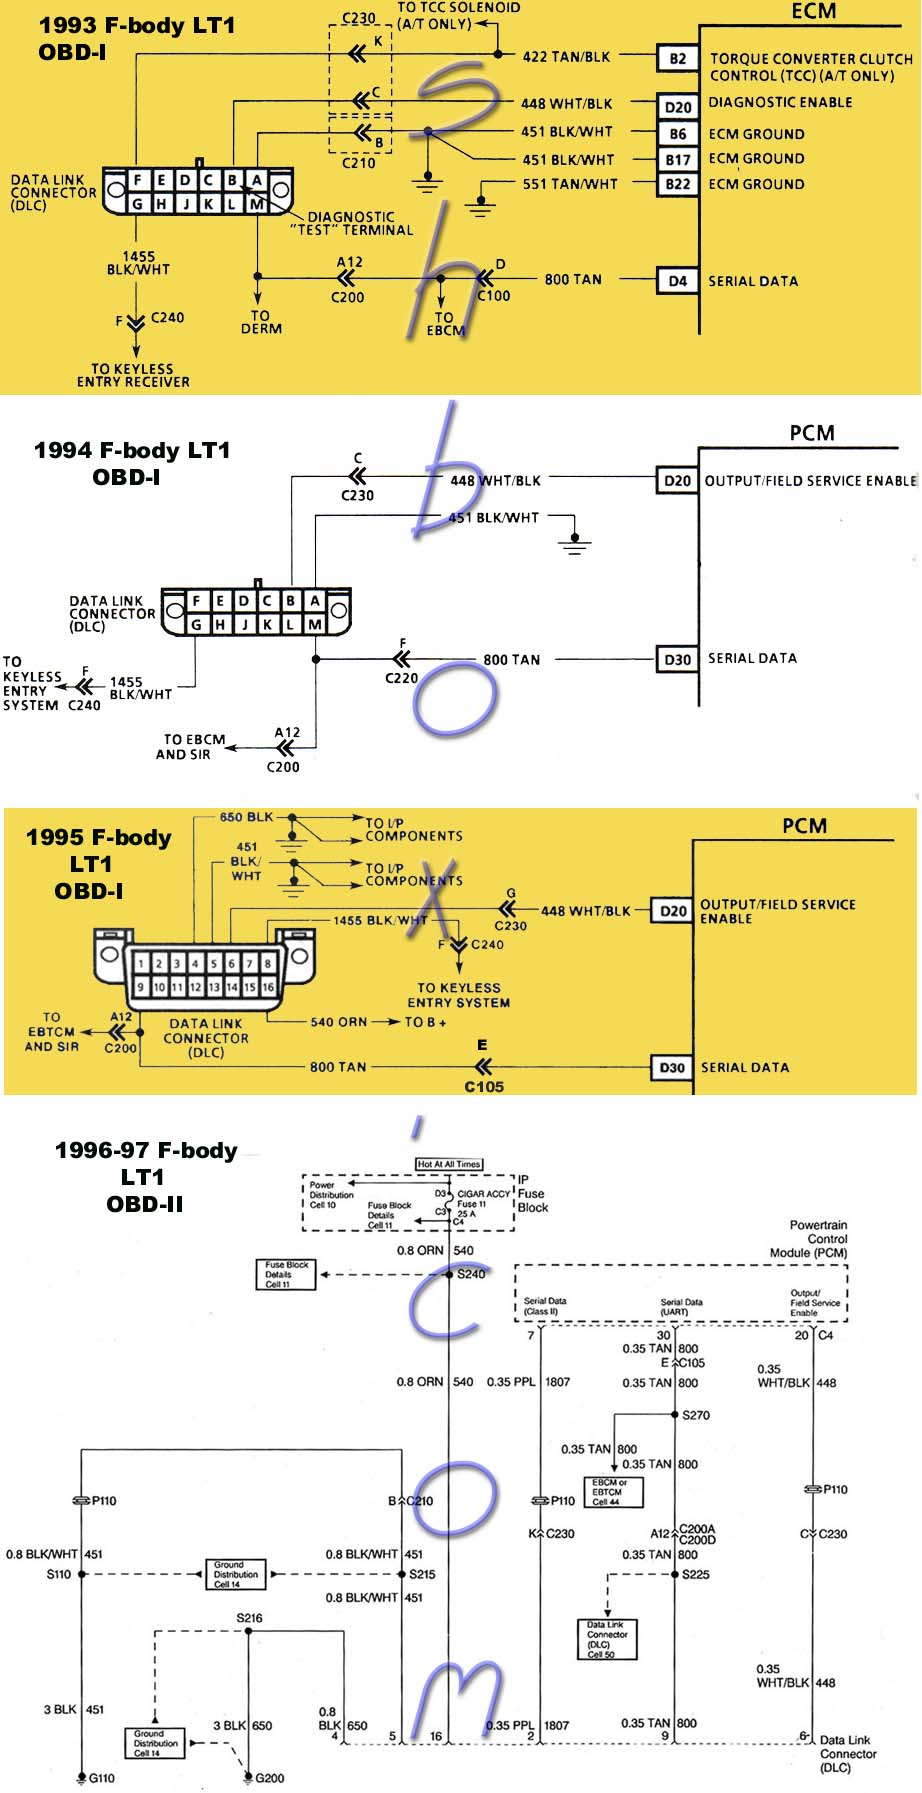 Dlc Wiring Diagram | Schematic Diagram on 98 silverado dlc pins diagram, 2 liquid level switch running 1 motor wire diagram, data link diagram, dlc pinout diagram, obd ii connector diagram,